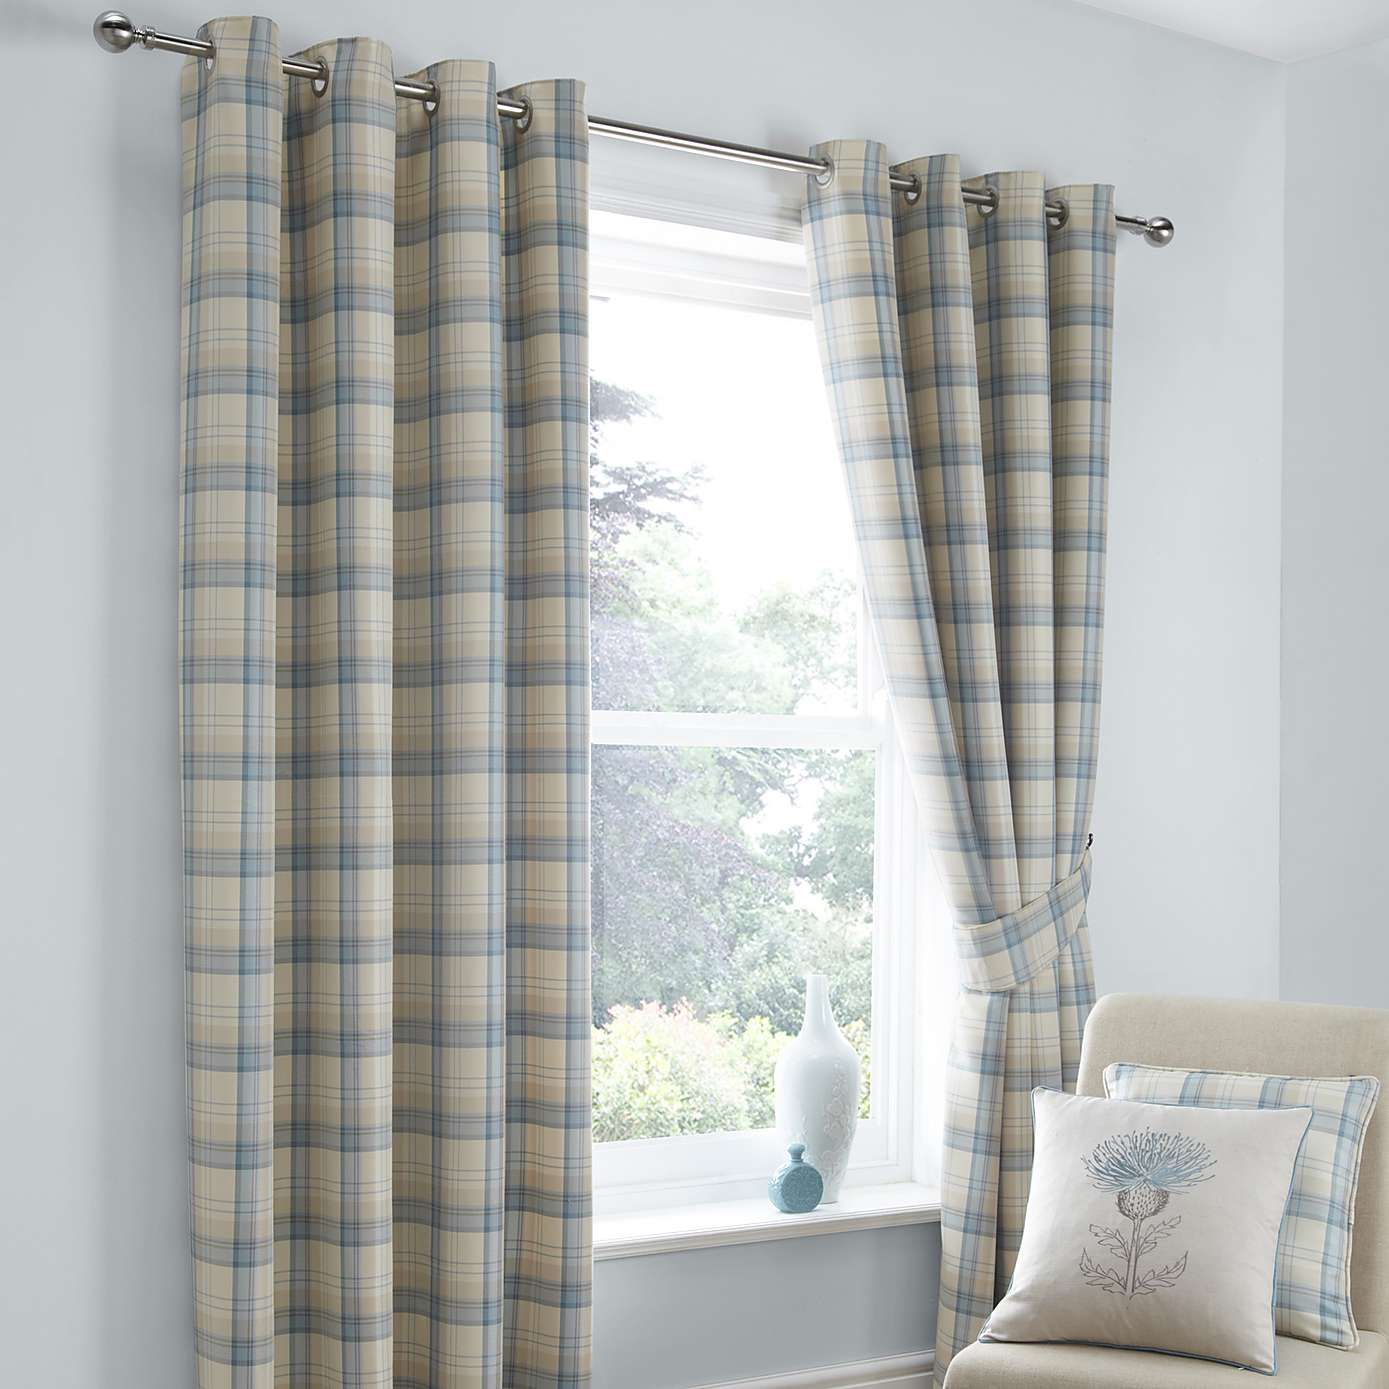 Duck Egg Balmoral Eyelet Curtain Collection Dunelm DraperyWindow TreatmentsCurtains